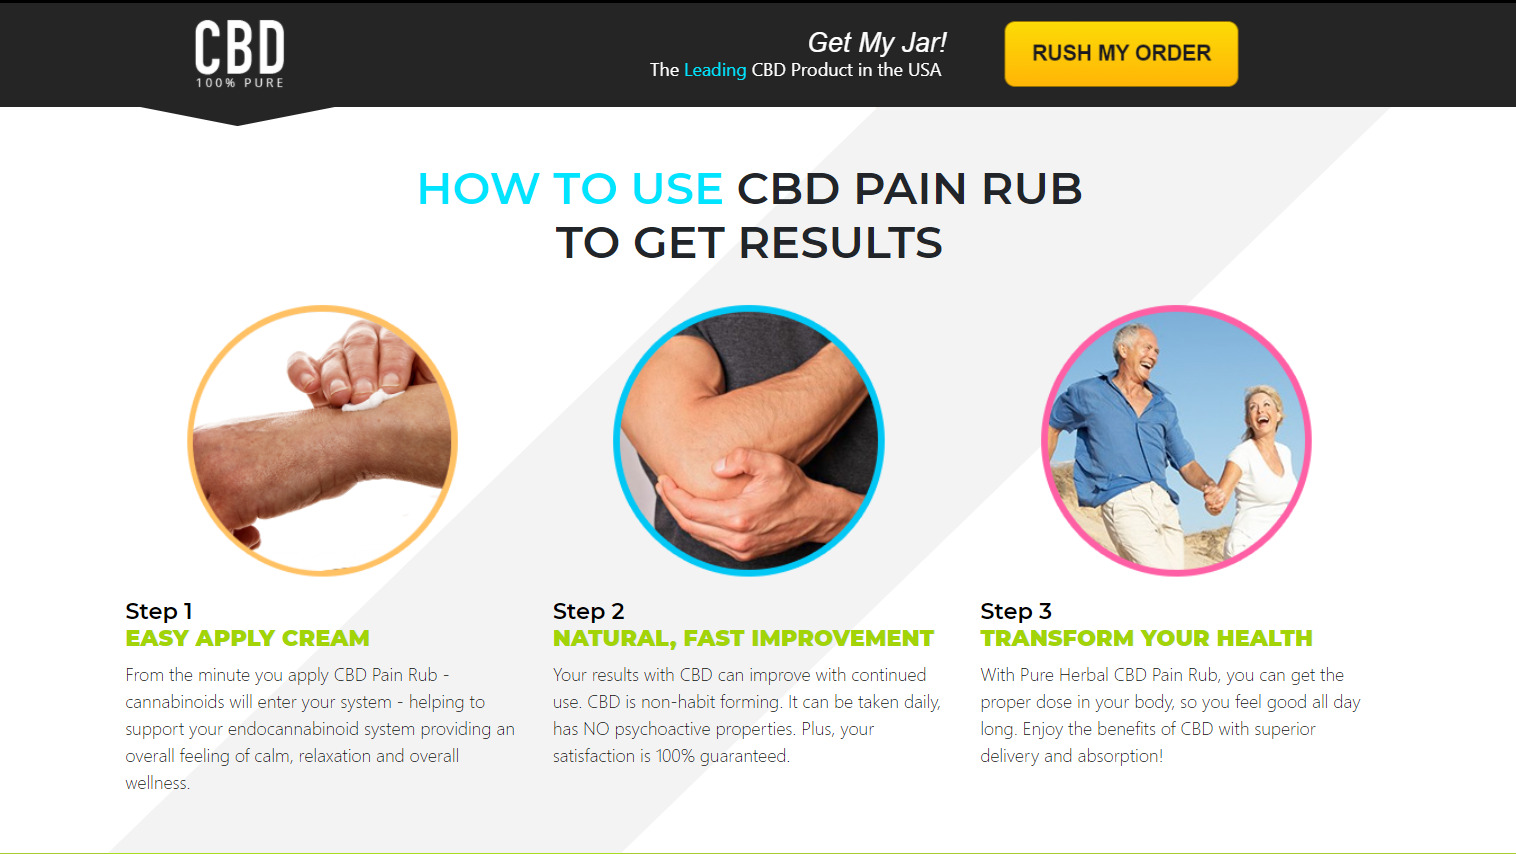 cbd pain rub use